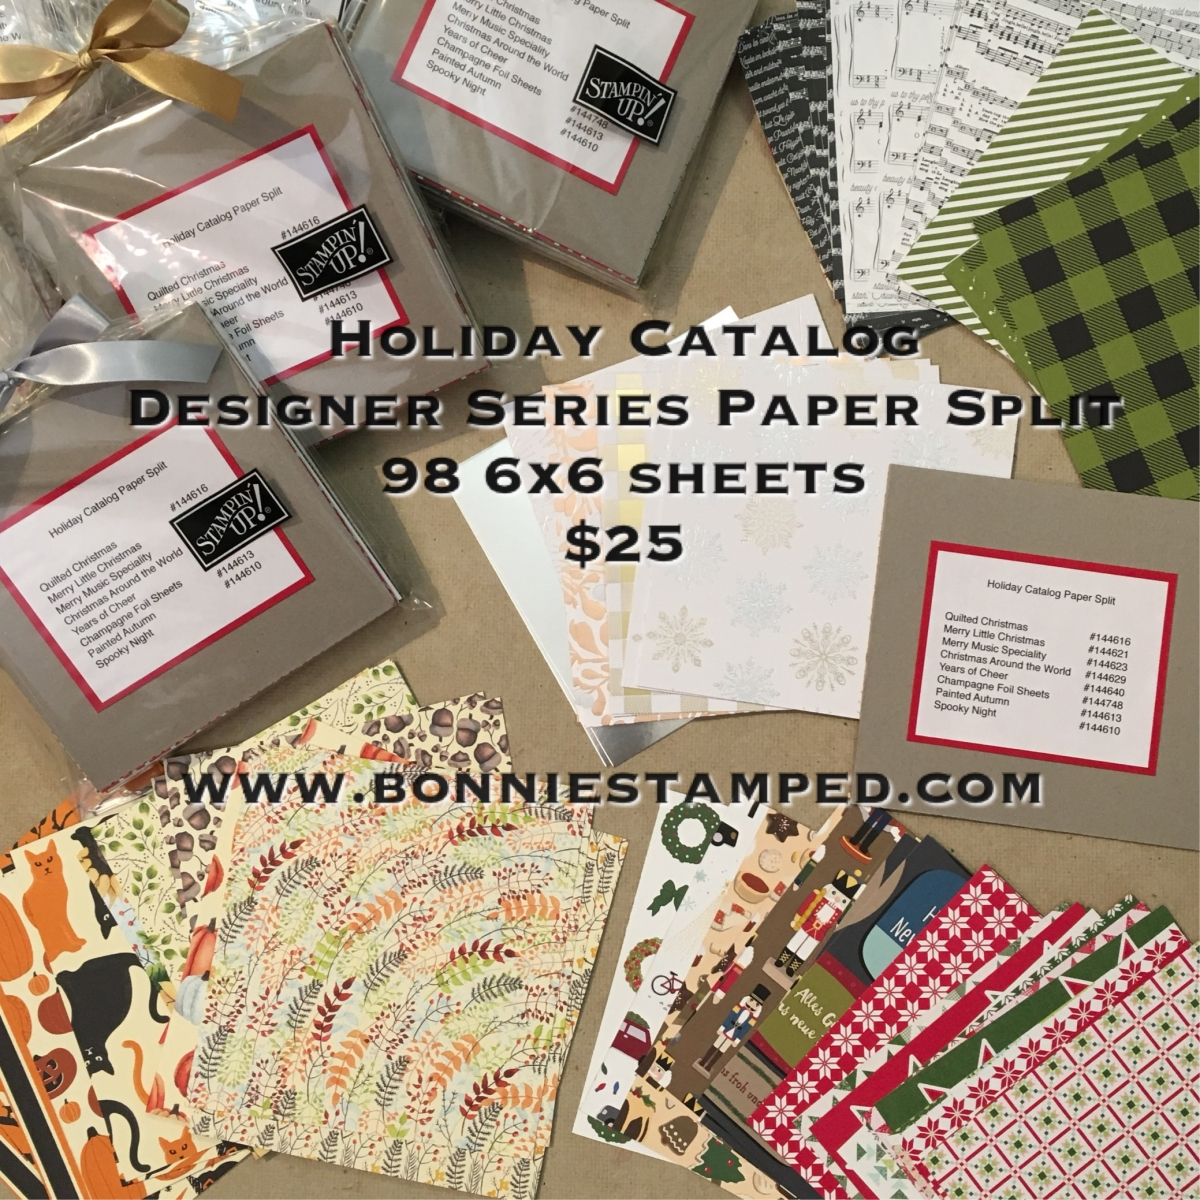 Designer Catalog: Holiday Catalog Designer Series Paper Split! • Bonnie Stamped